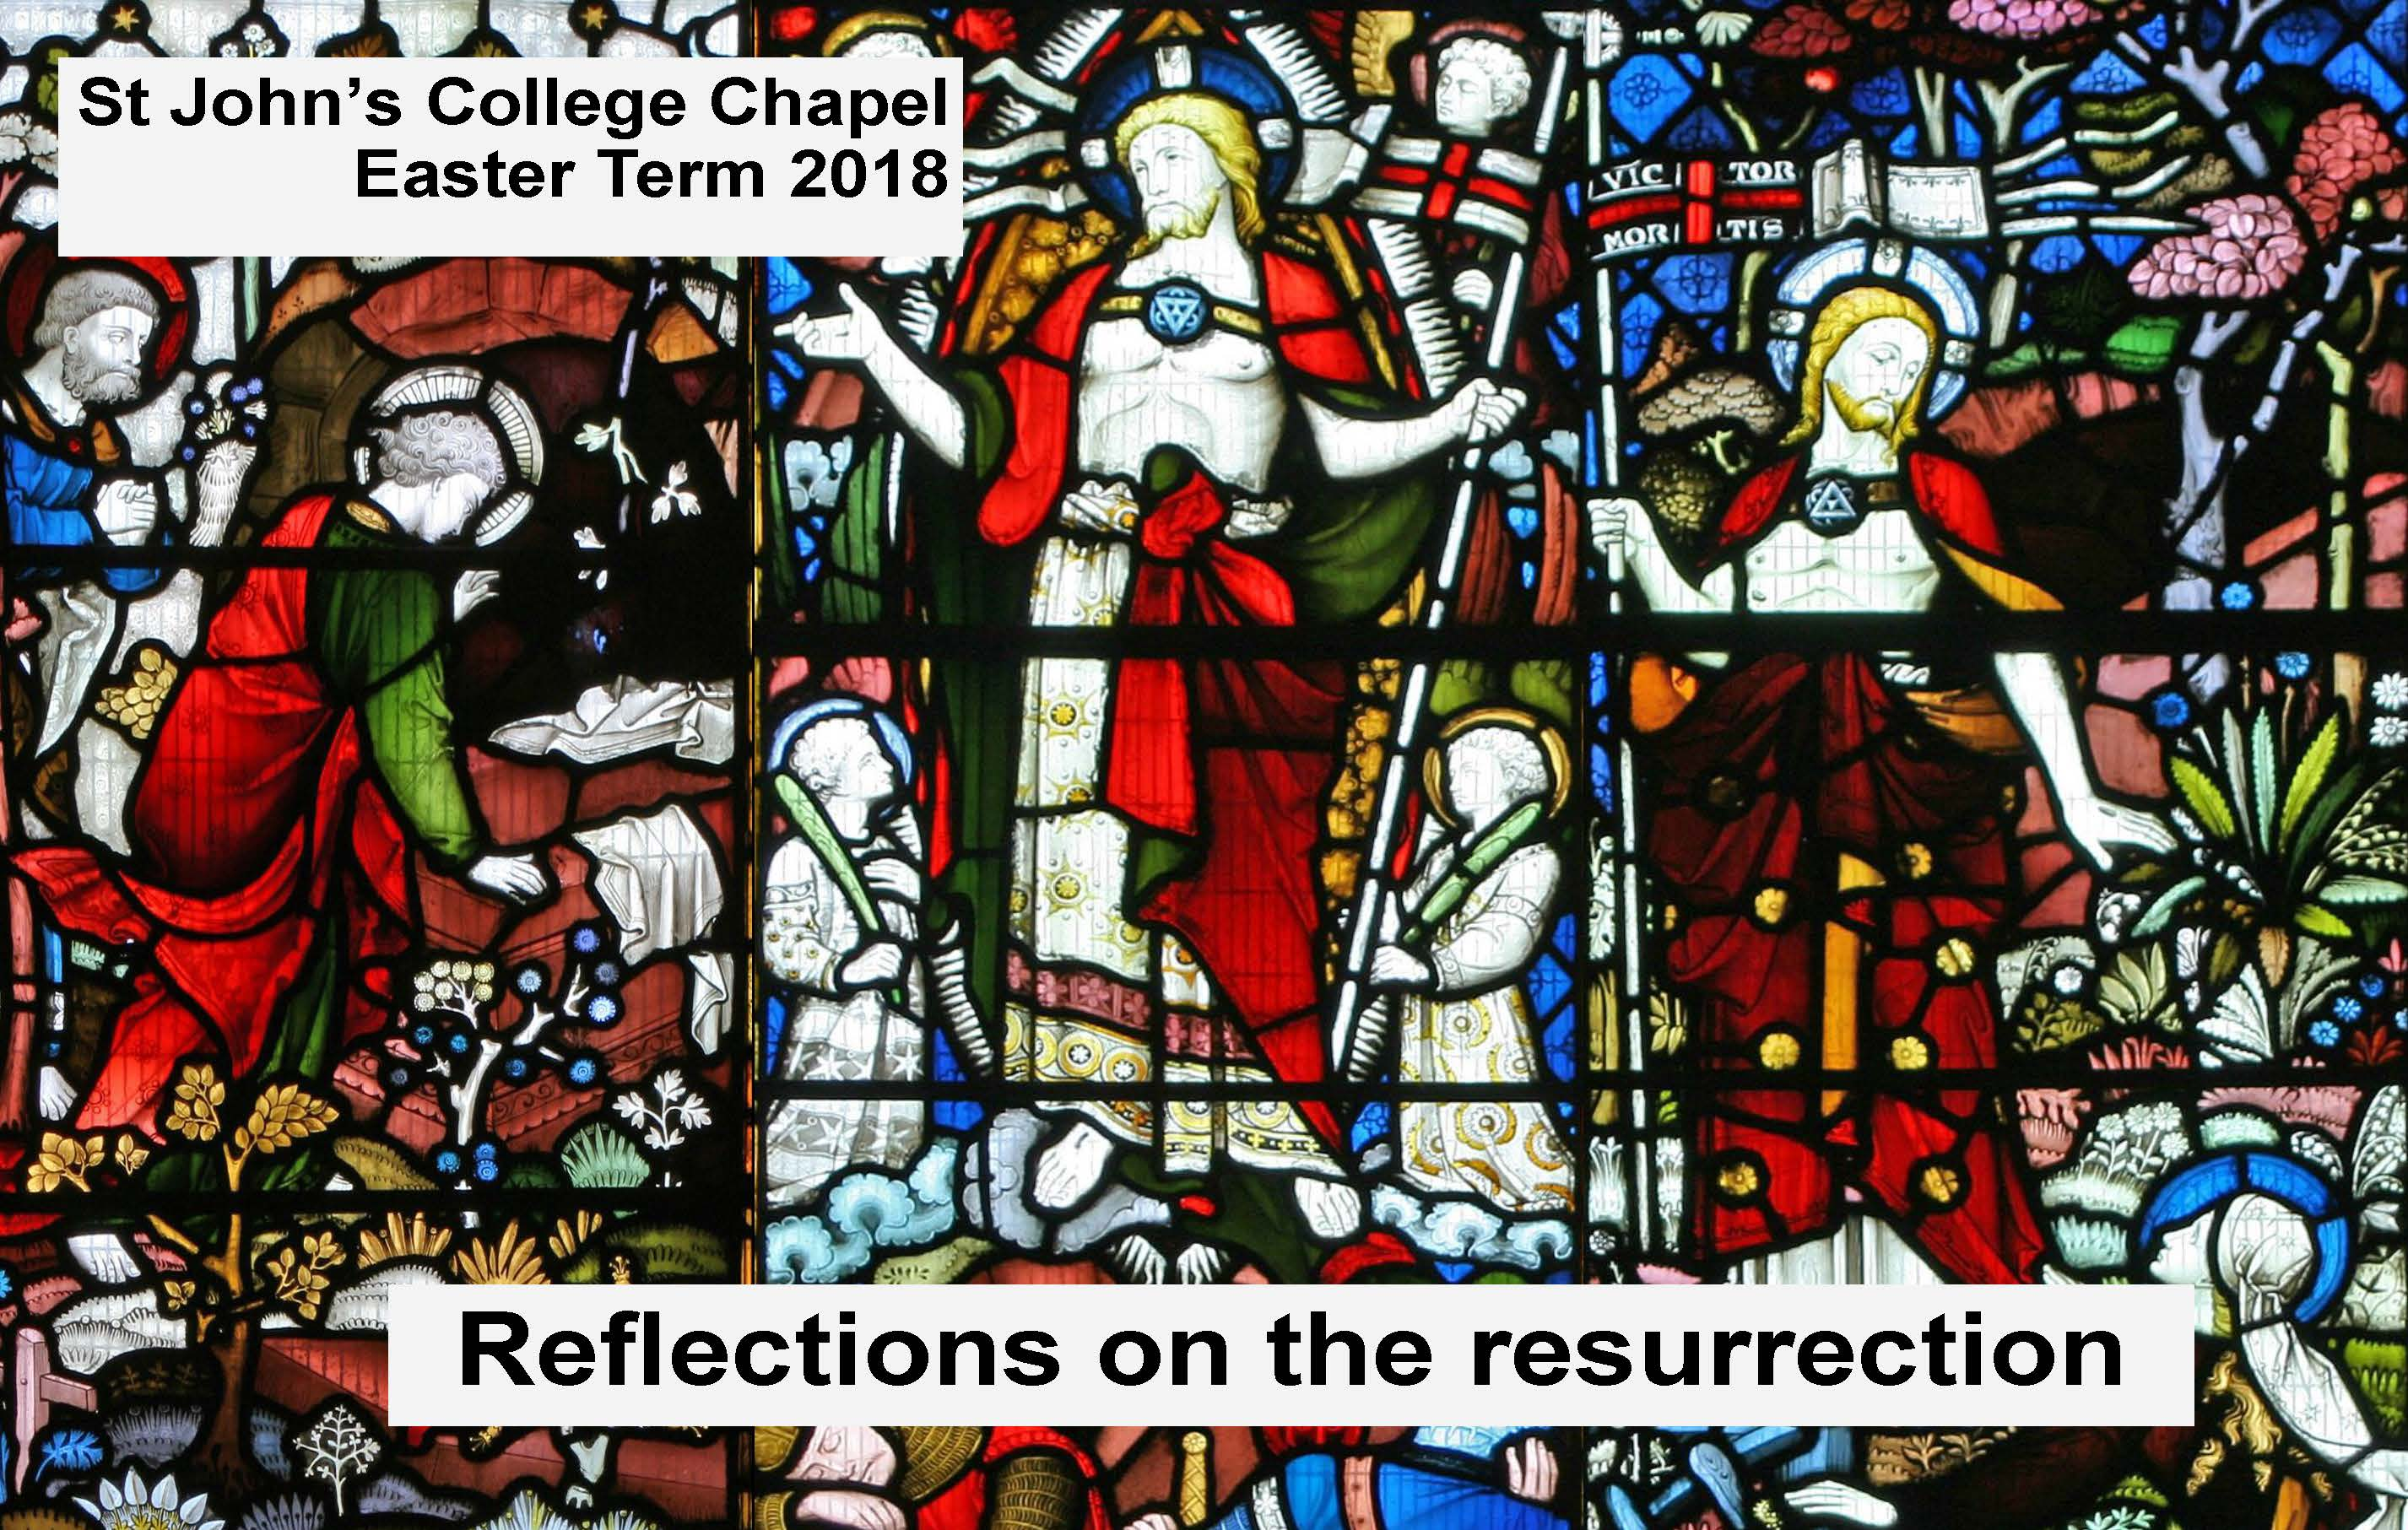 Reflections on the resurrection